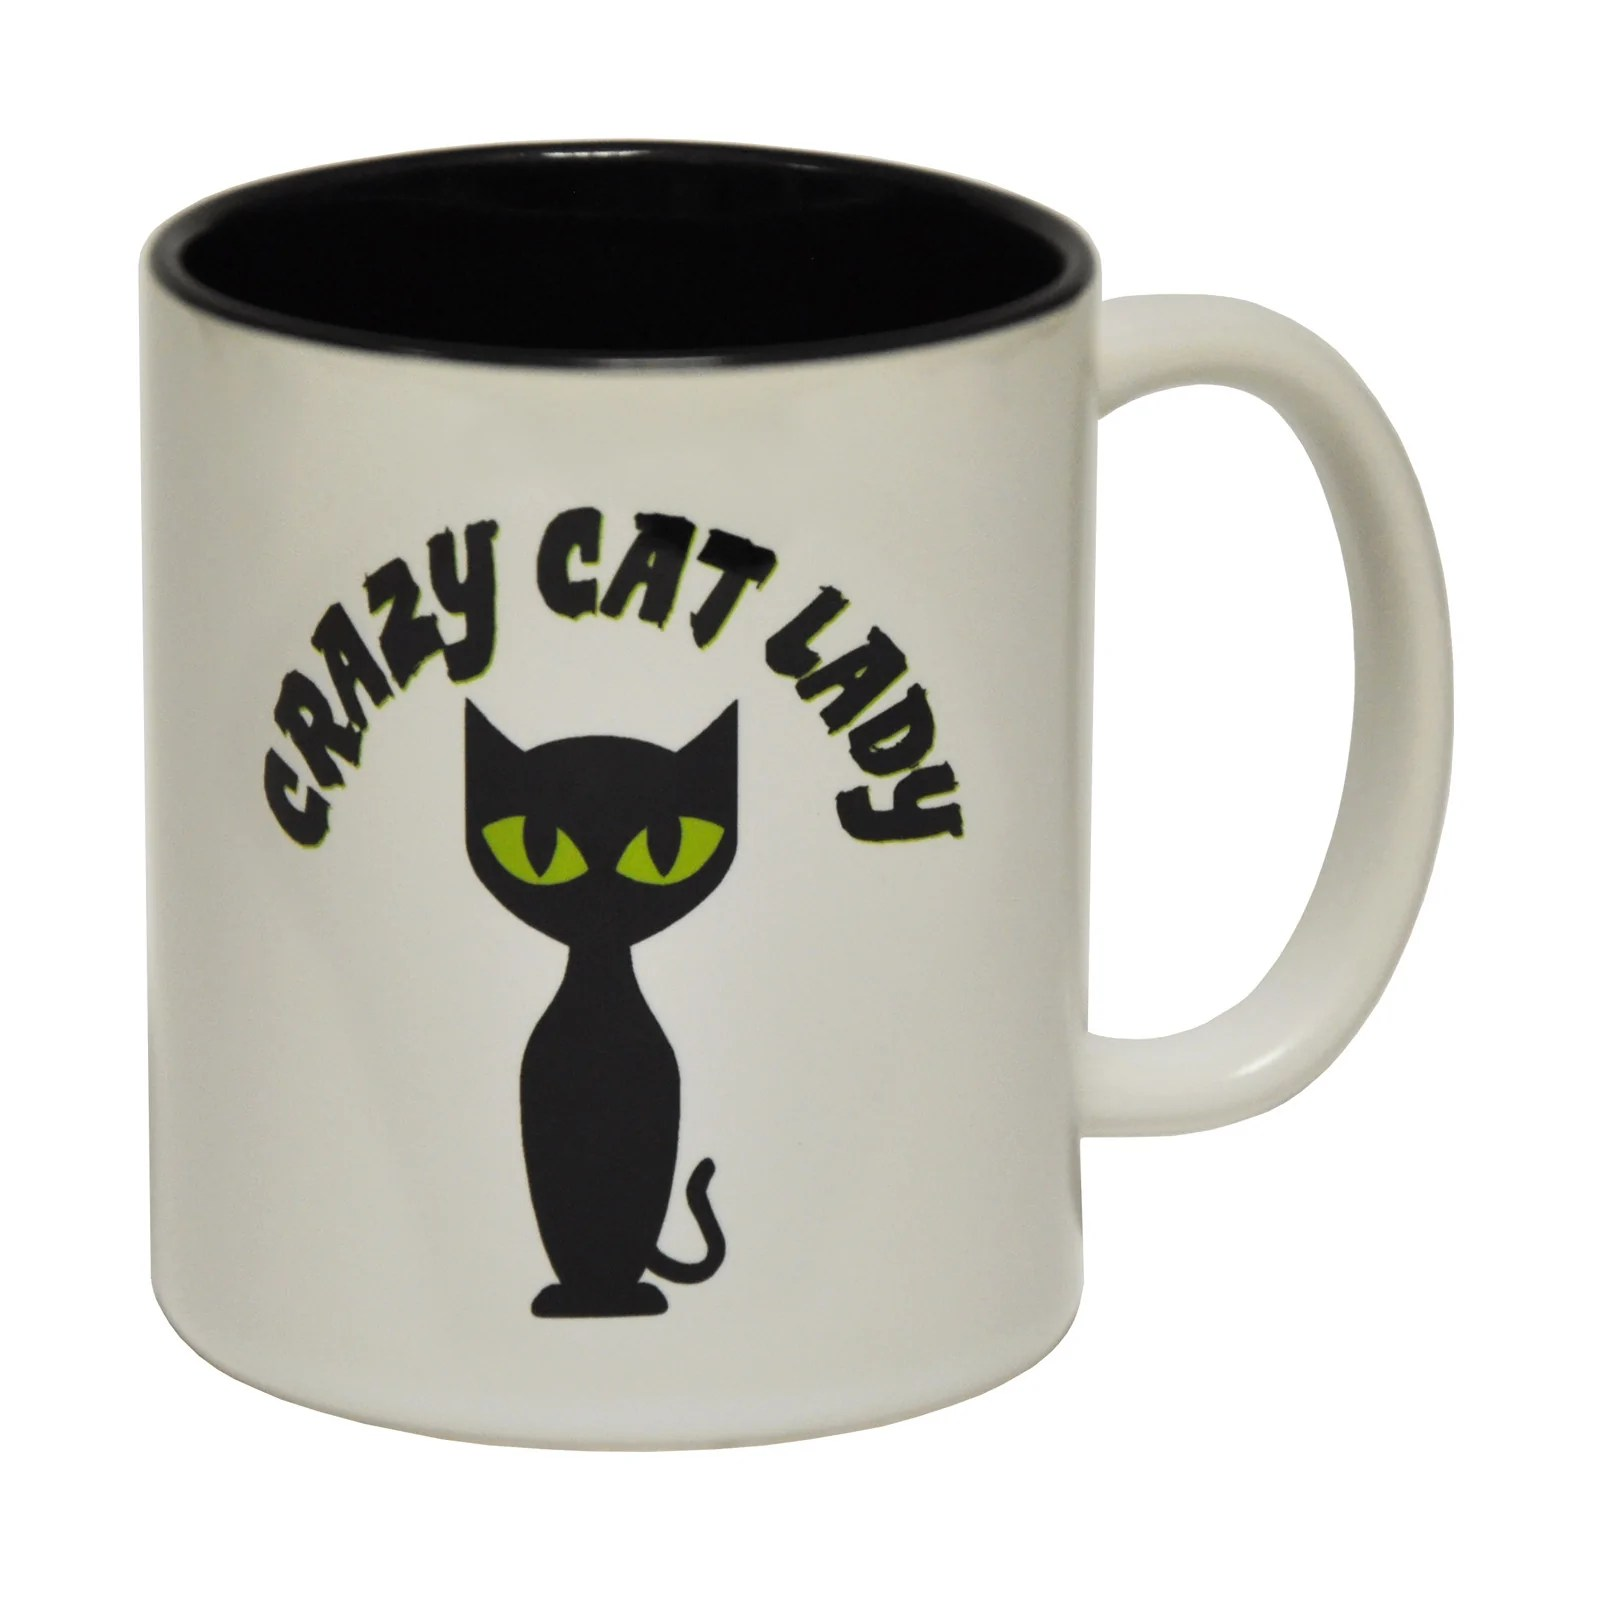 Weird Mugs Funny Mugs Crazy Cat Lady Coffee Mug Novelty Joke Cats